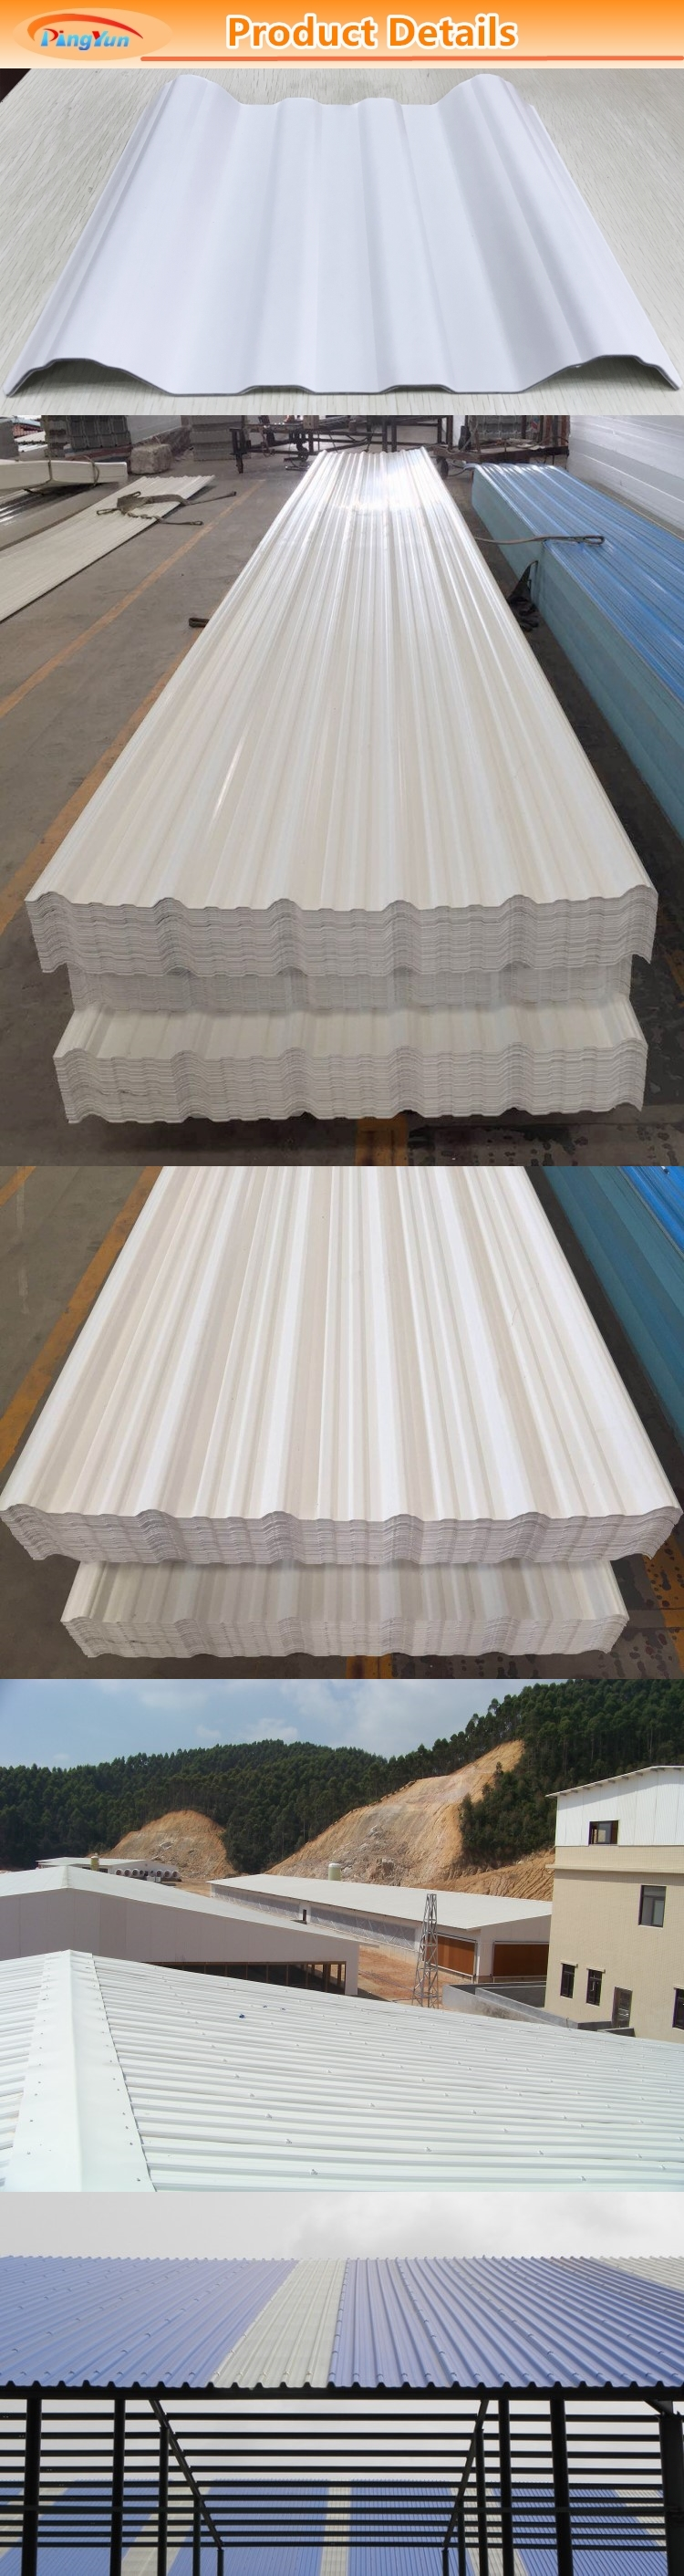 uv resistance apvc roofing sheets